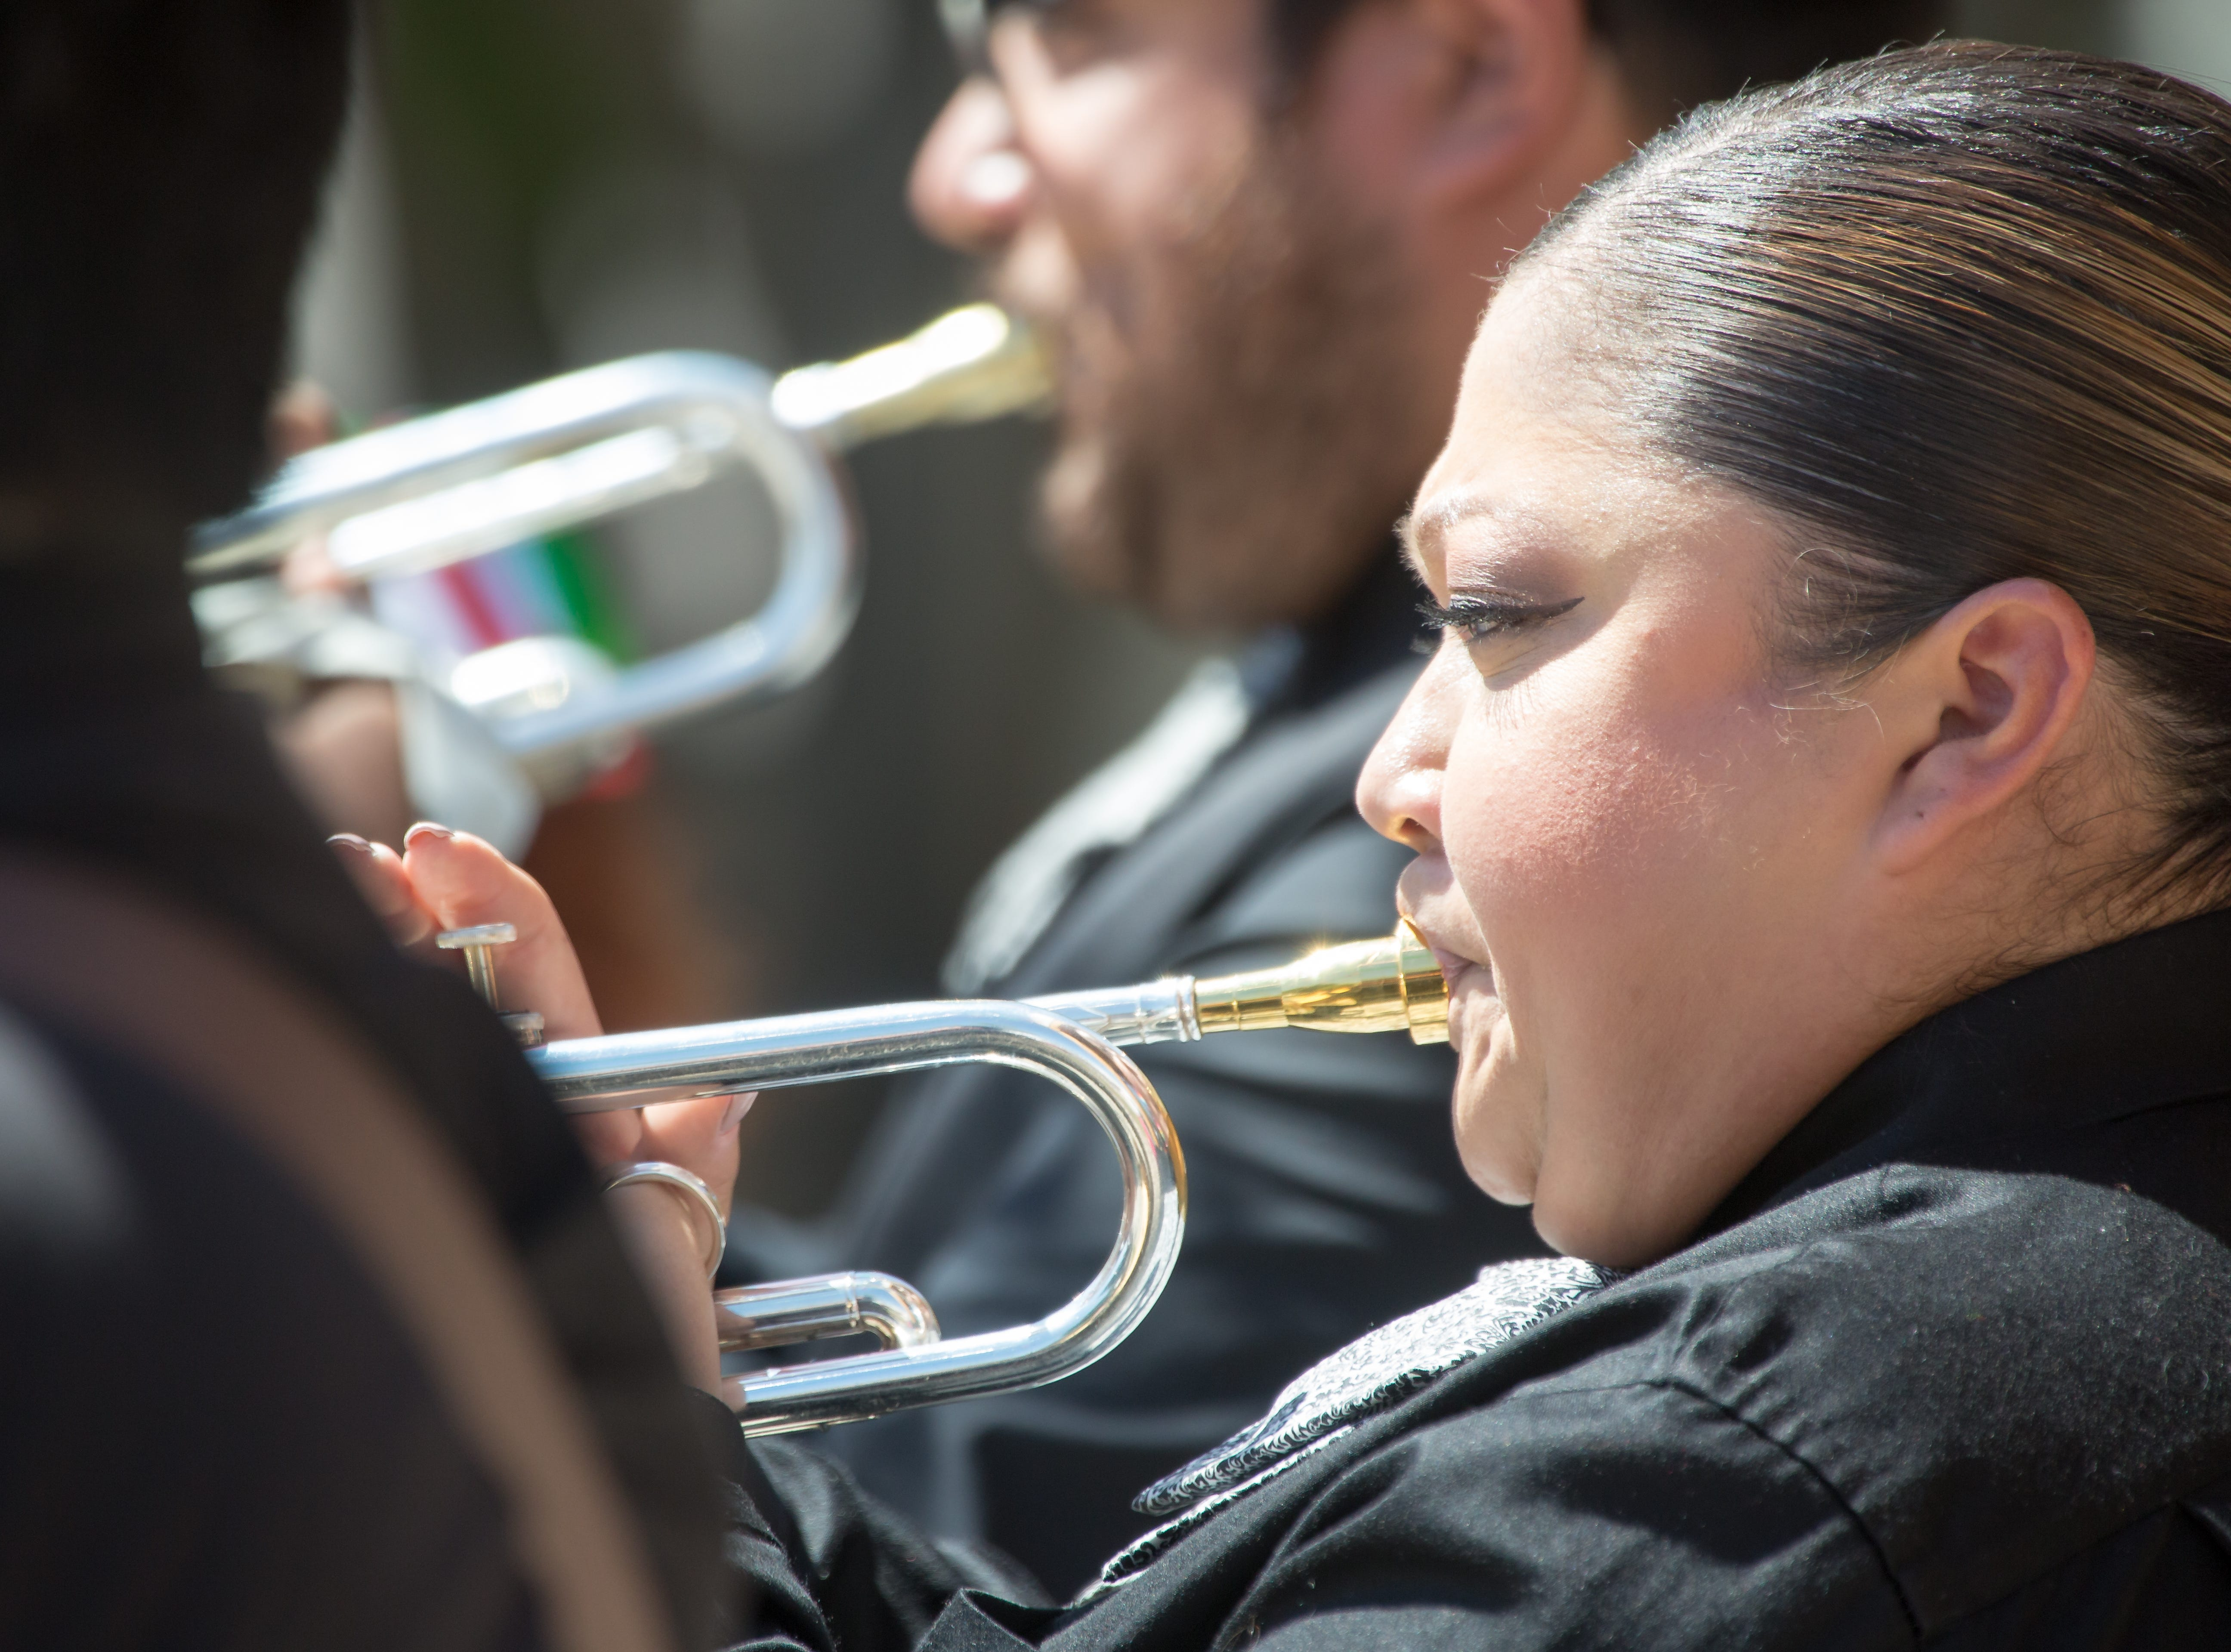 Amelia Garcia, with Mariachi Tapatio, performs in the Mesilla plaza on Sunday, September 16, 2018 during the Diez y Seis de Septiembre Fiesta.